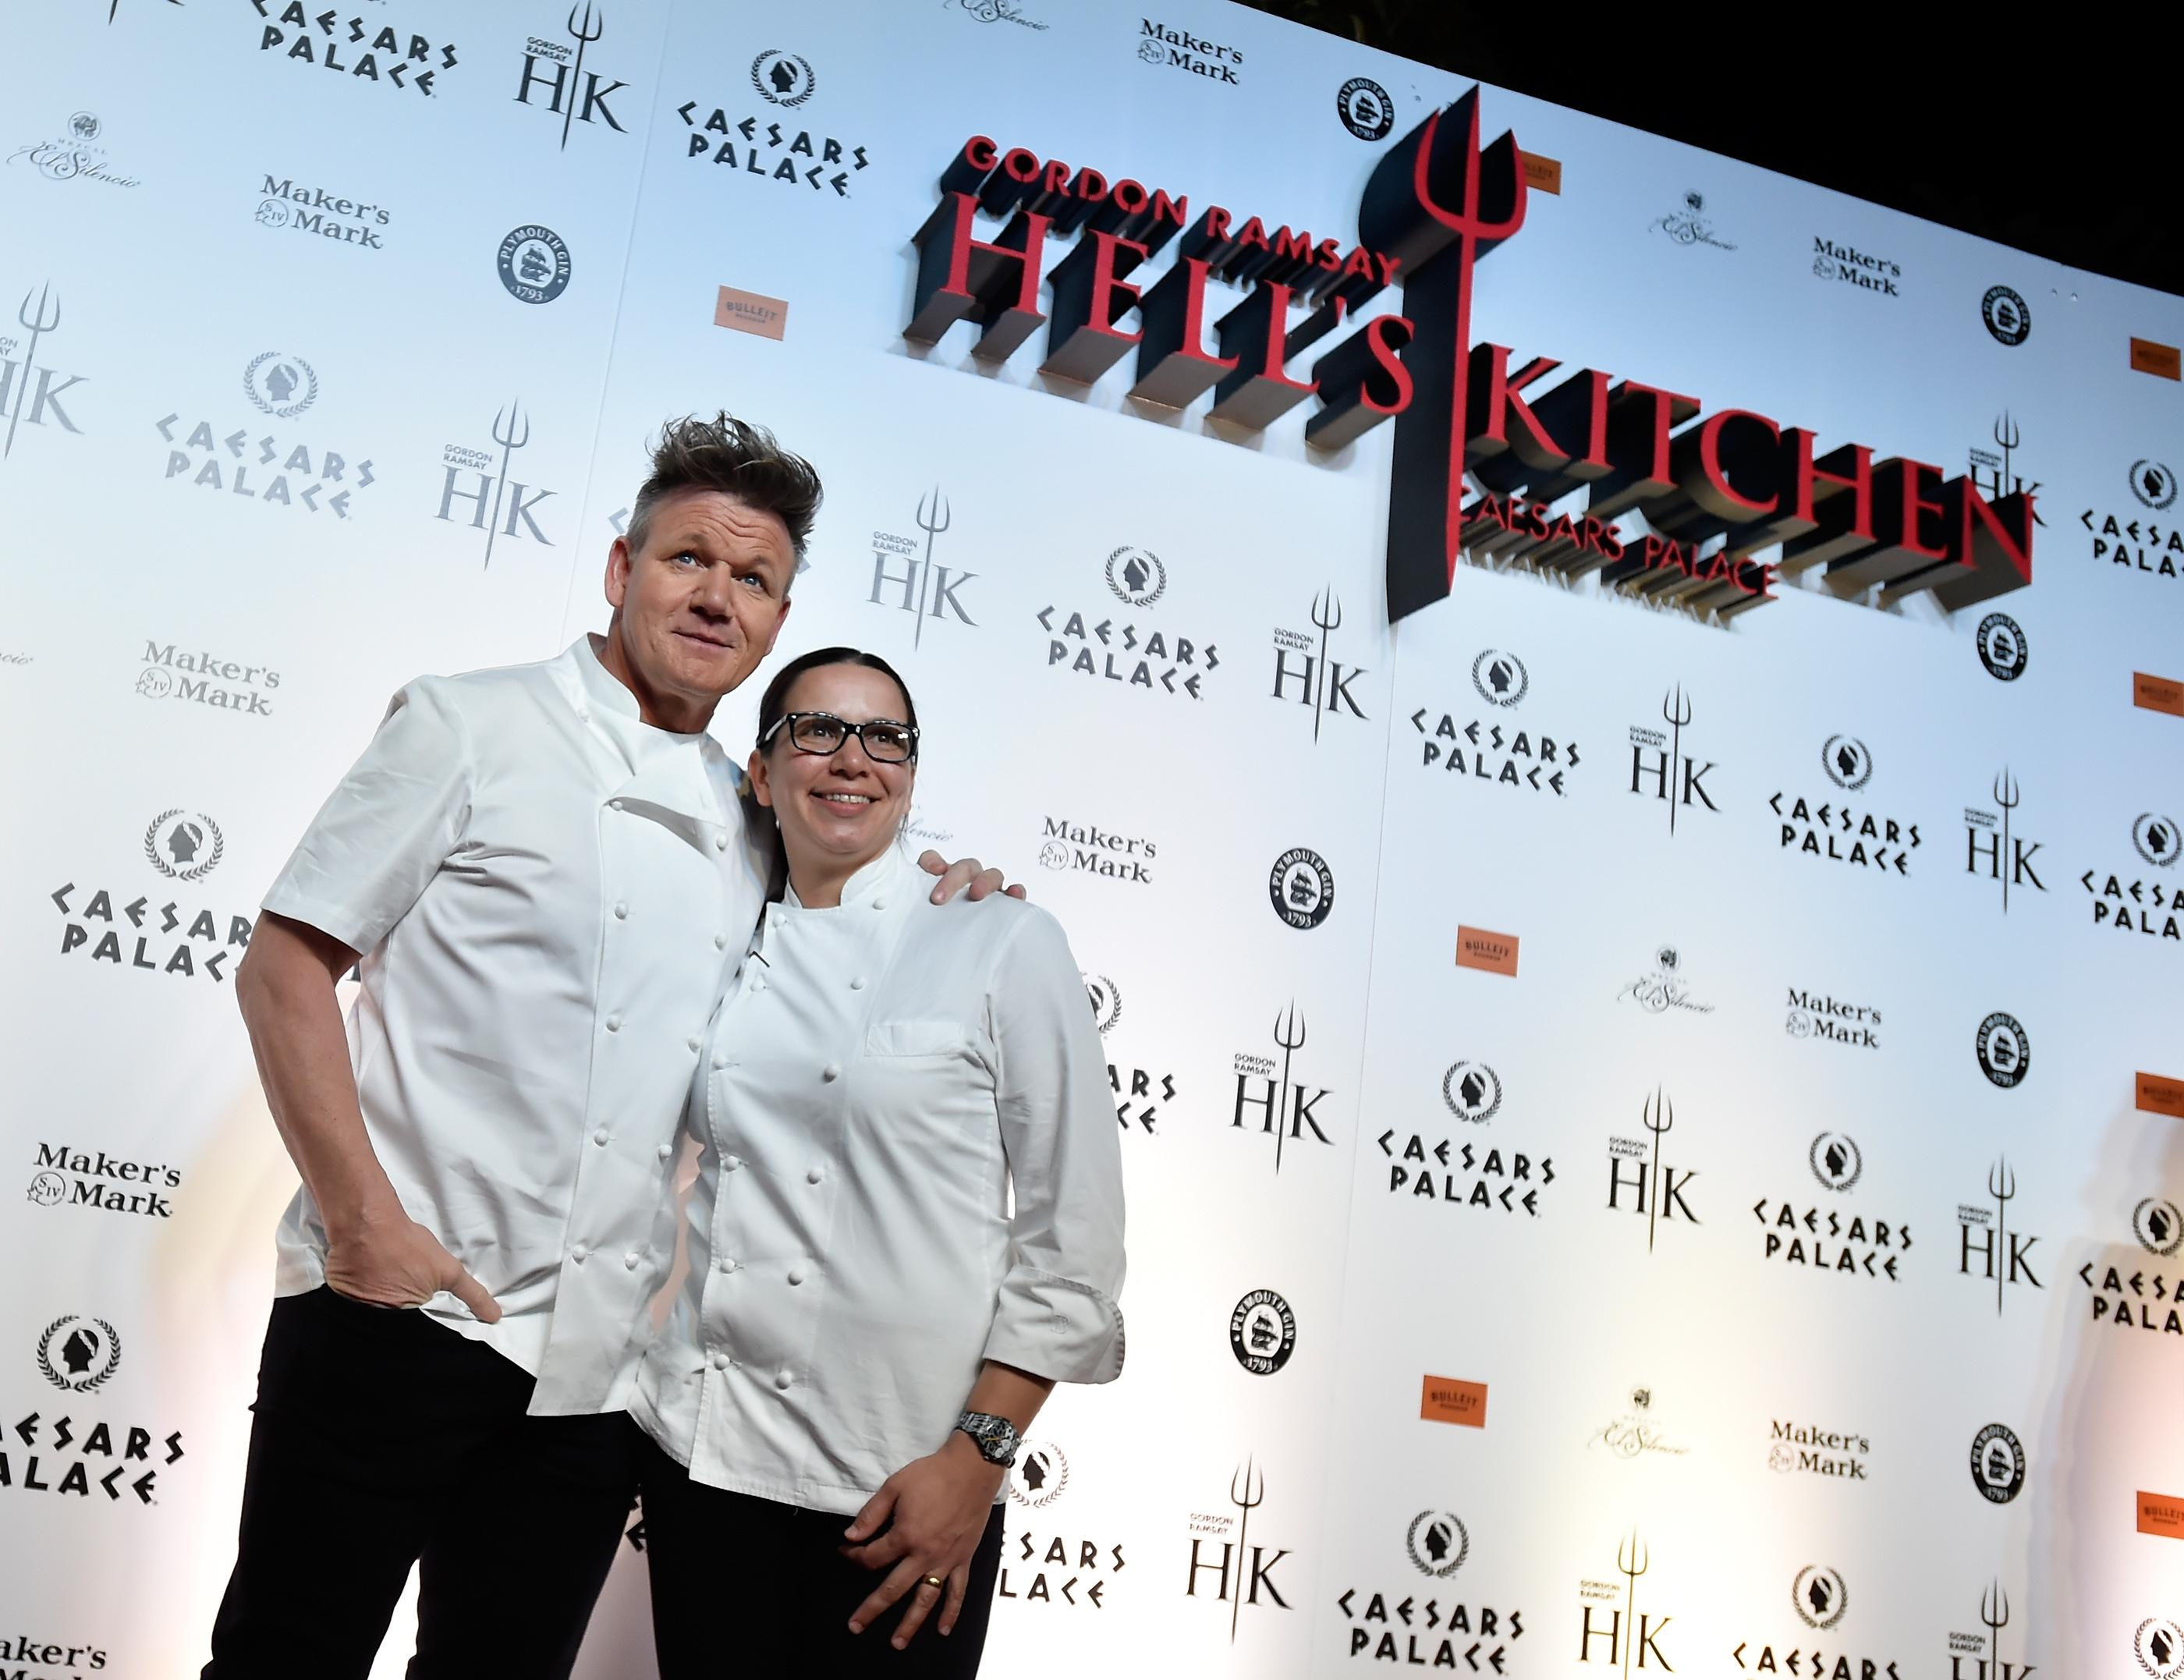 Chefs Gordon Ramsay, left, and Hell's Kitchen season 10 winner Christina Wilson attend the grand opening of Gordon Ramsay Hell's Kitchen at Caesars Palace Friday, Jan. 26, 2018, in Las Vegas. CREDIT: David Becker/Las Vegas News Bureau